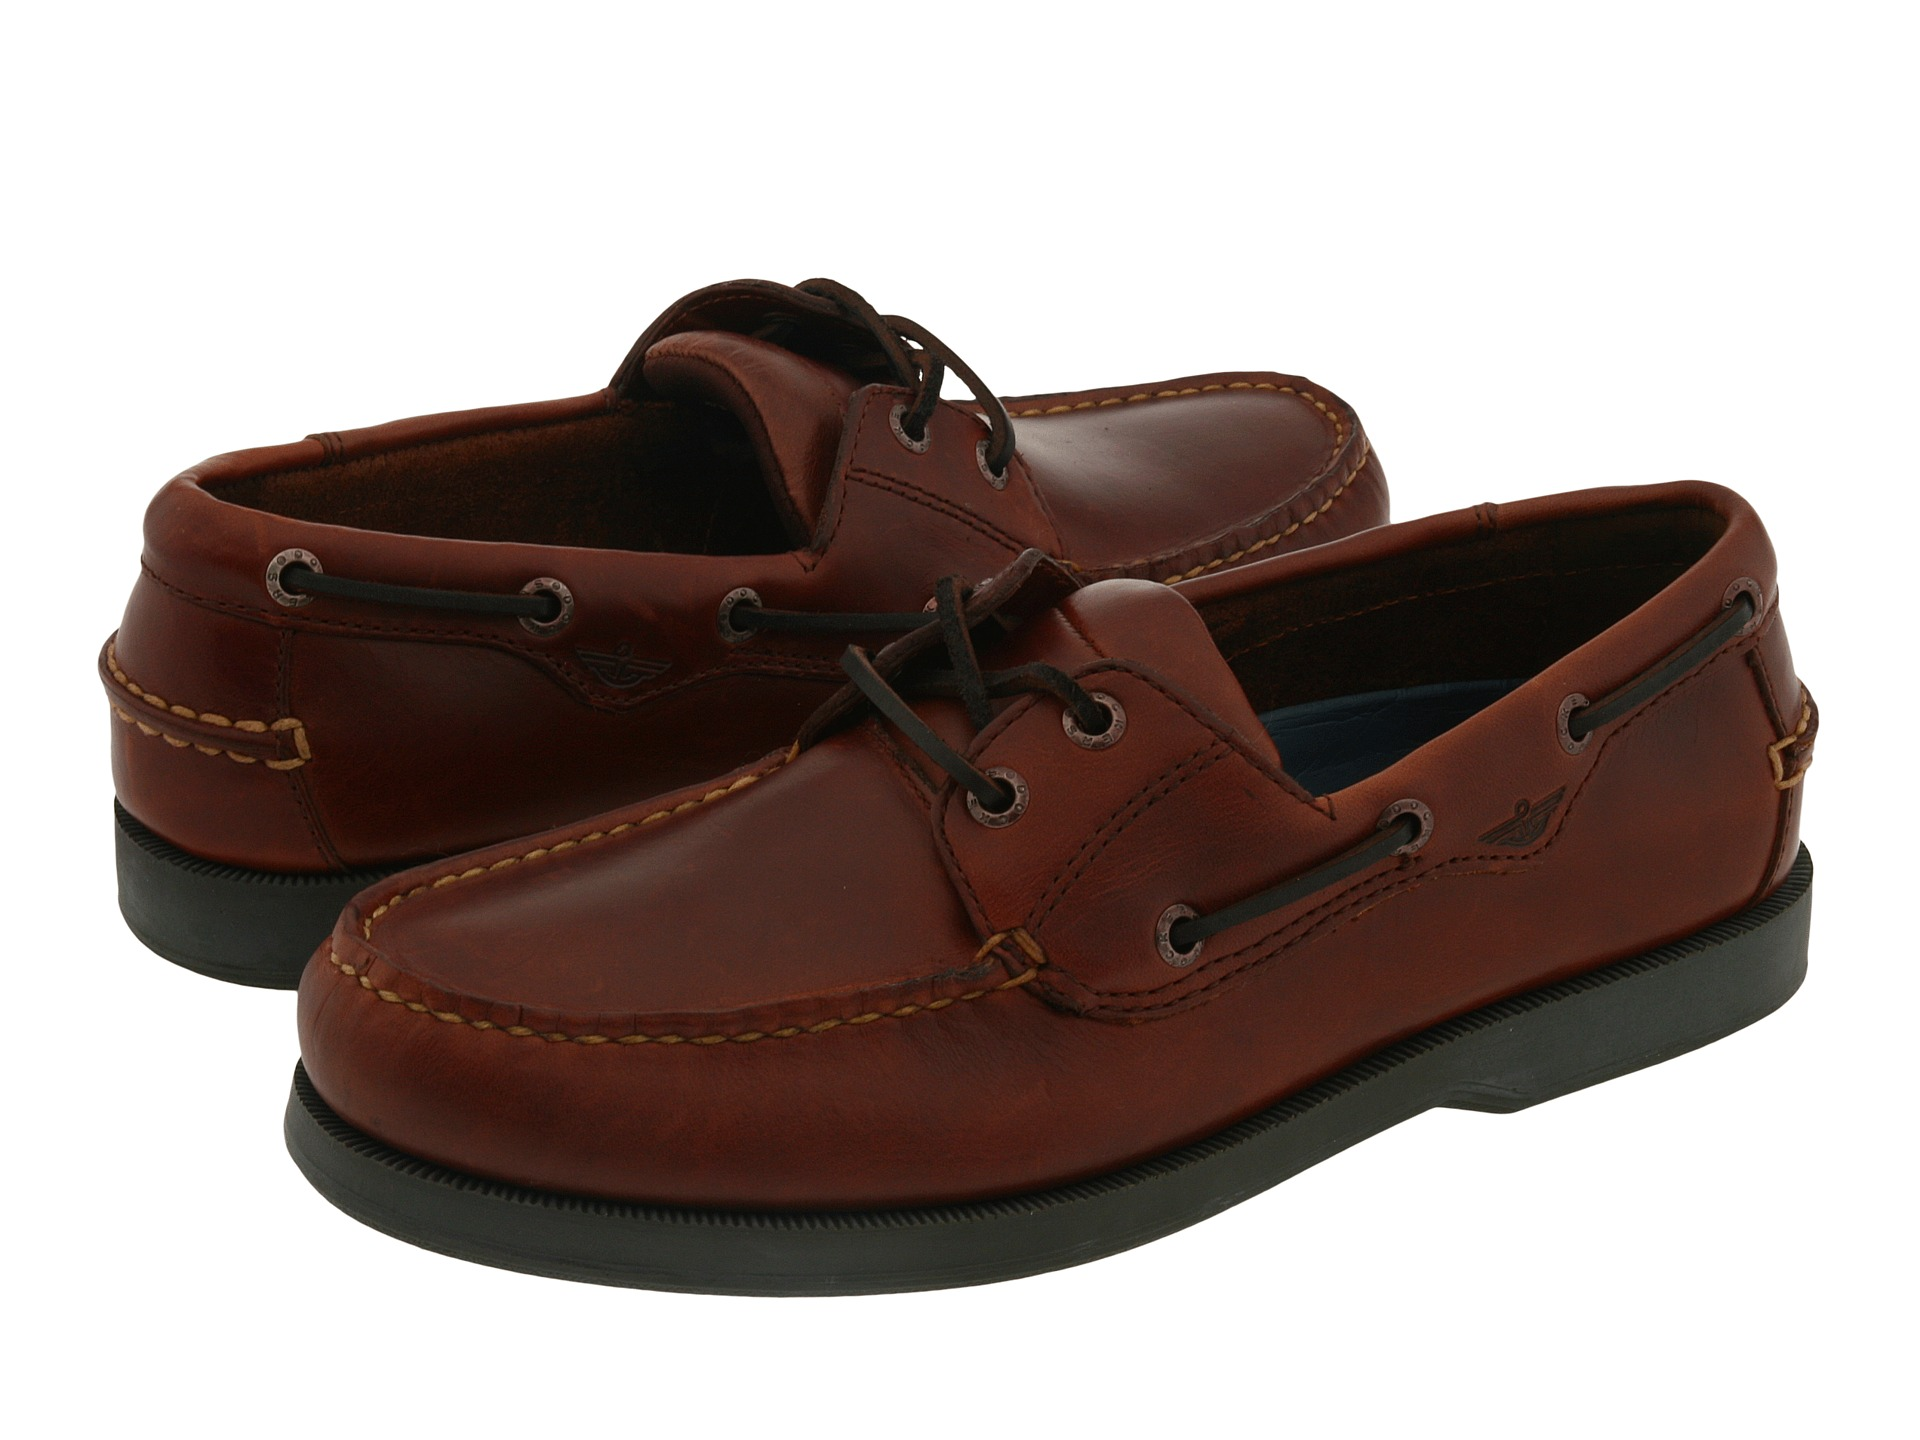 Dockers Castaway - Zappos.com Free Shipping BOTH Ways